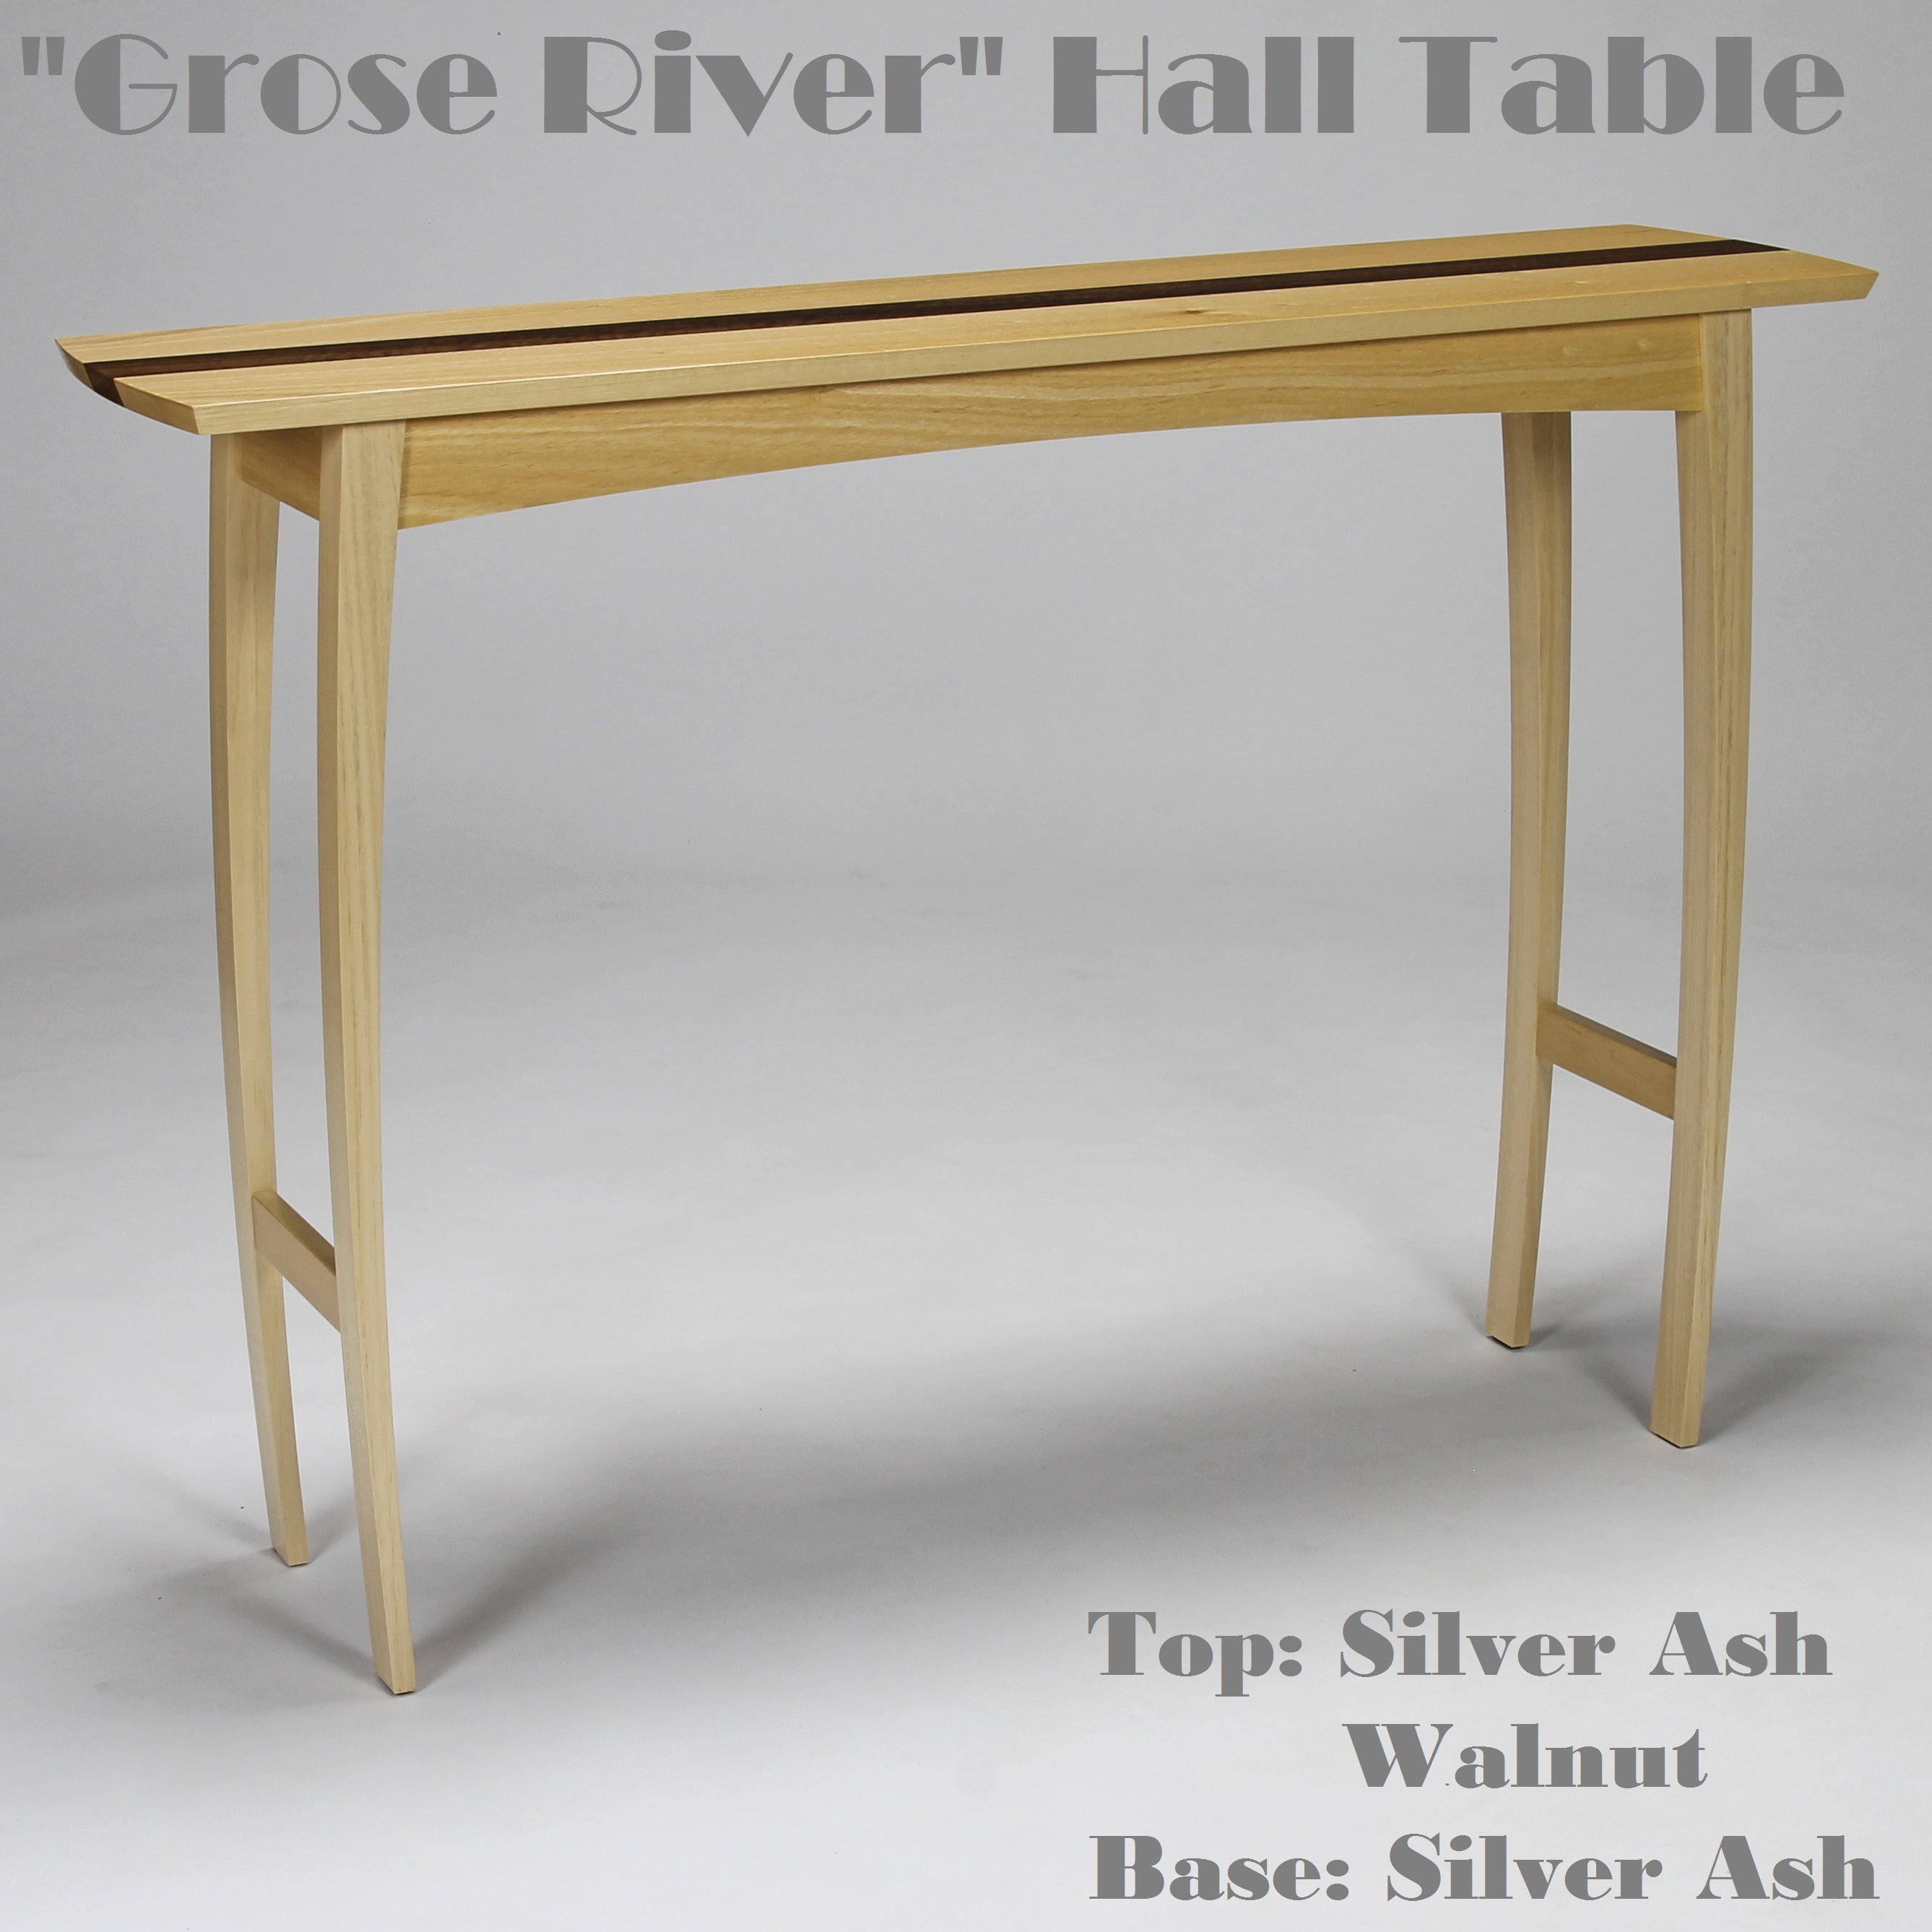 Grose River Hall Table Website